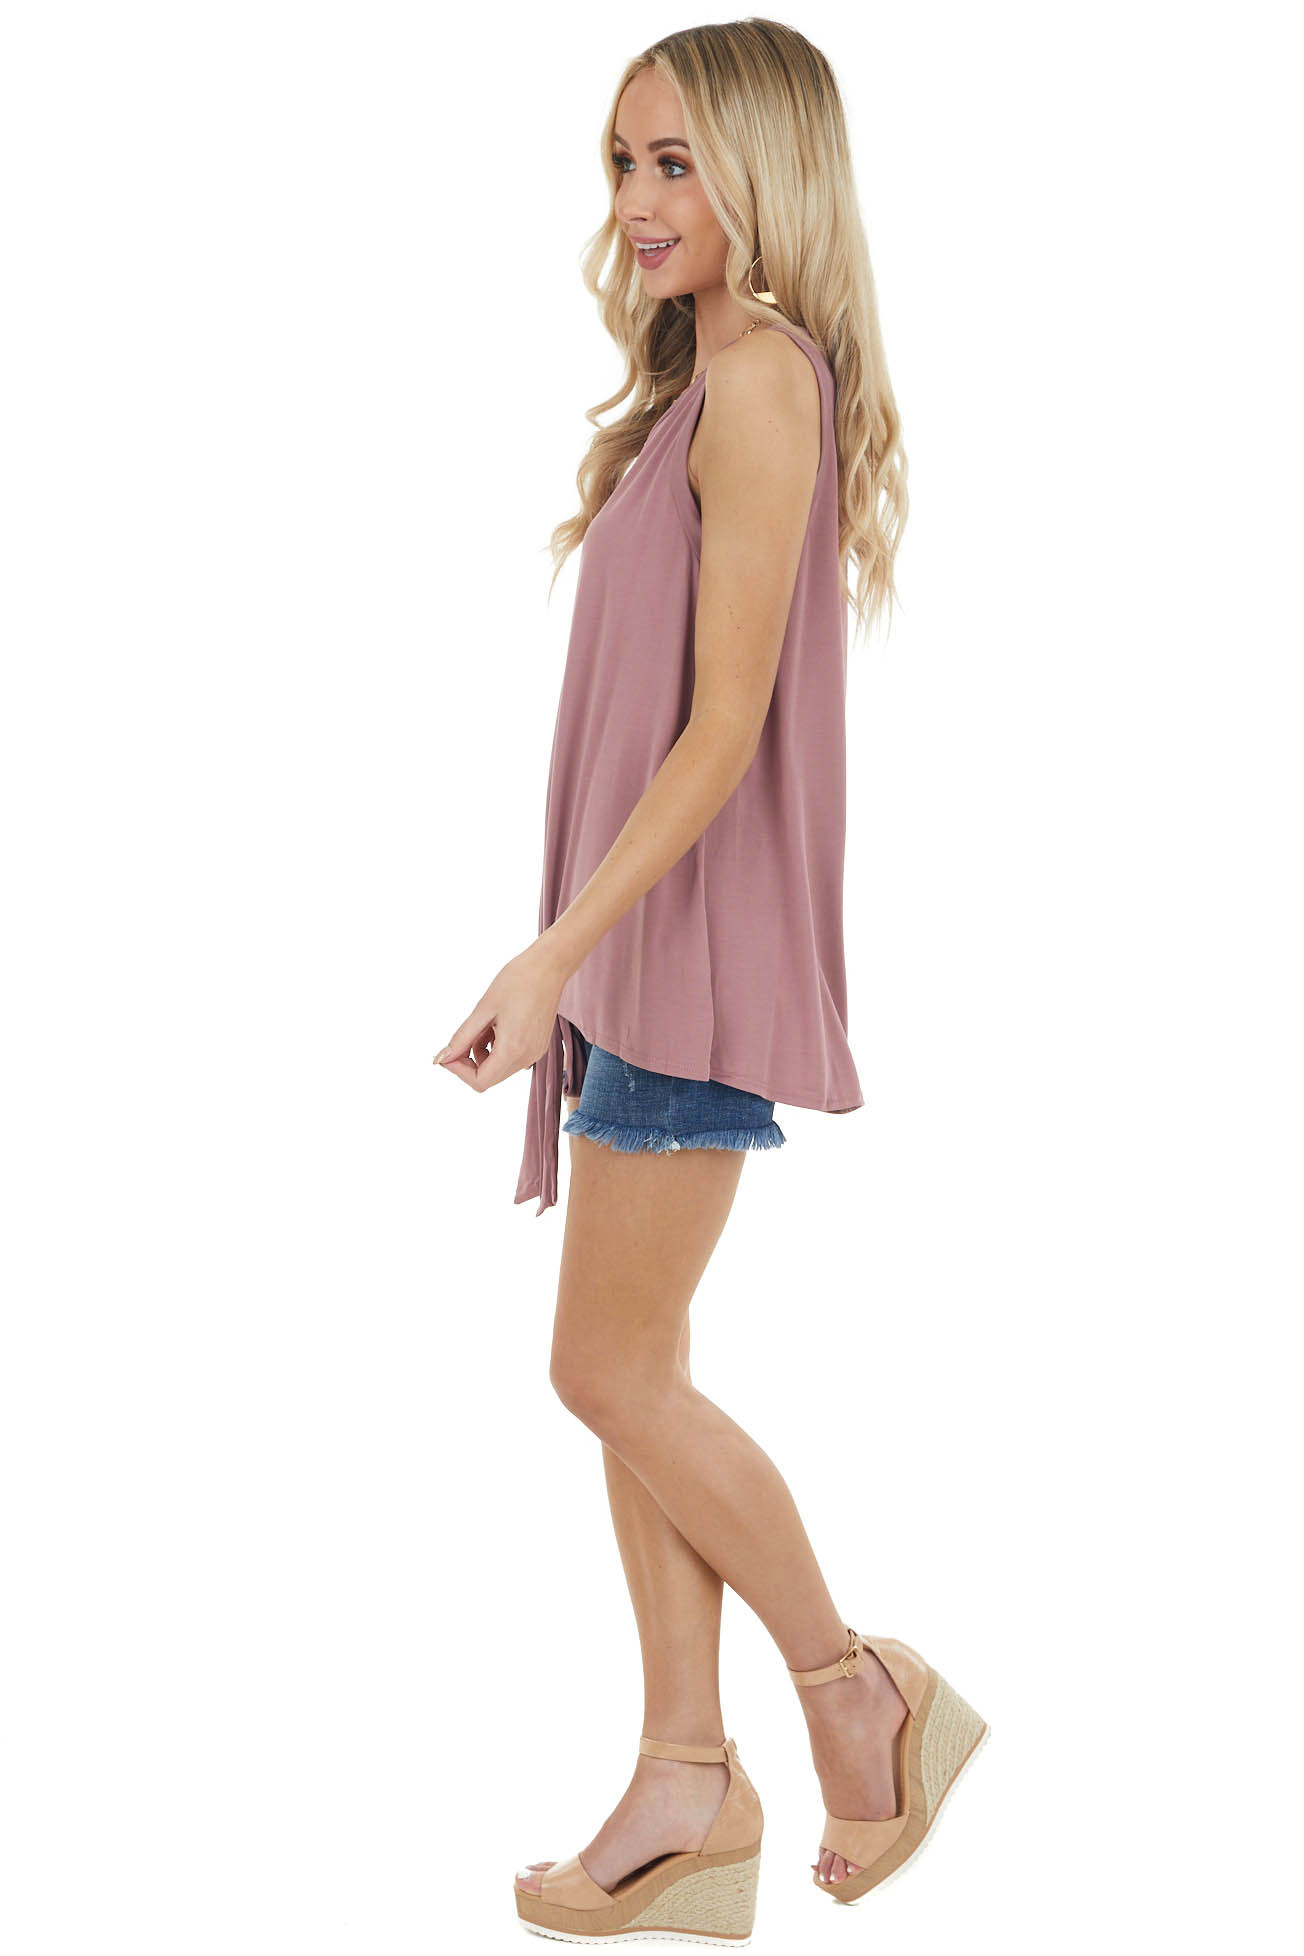 Dusty Rose Sleeveless Knit Top with Front Tie Detail